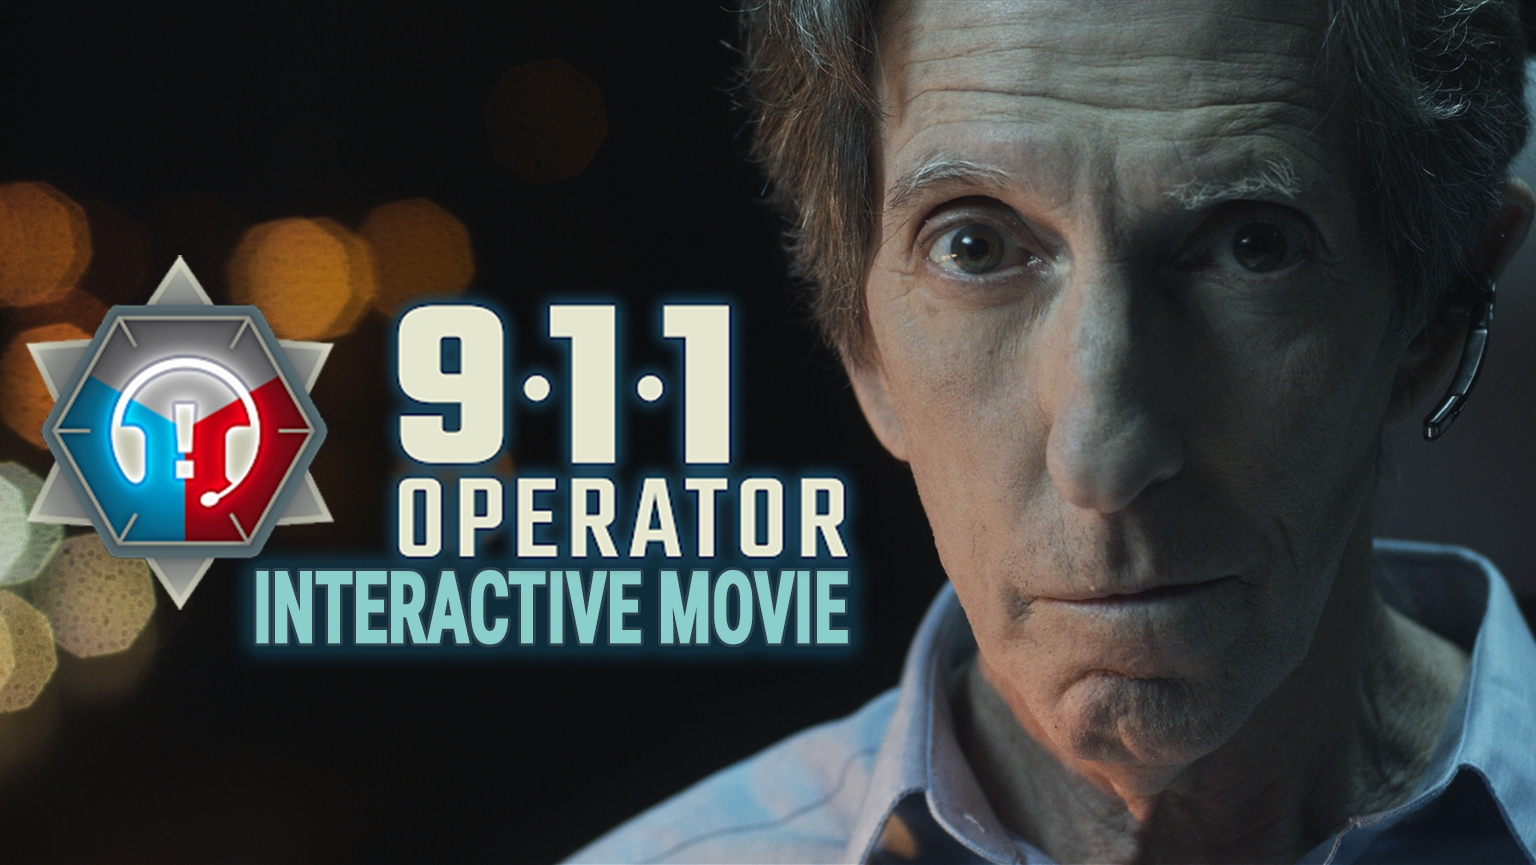 911 Operator Interactive Movie